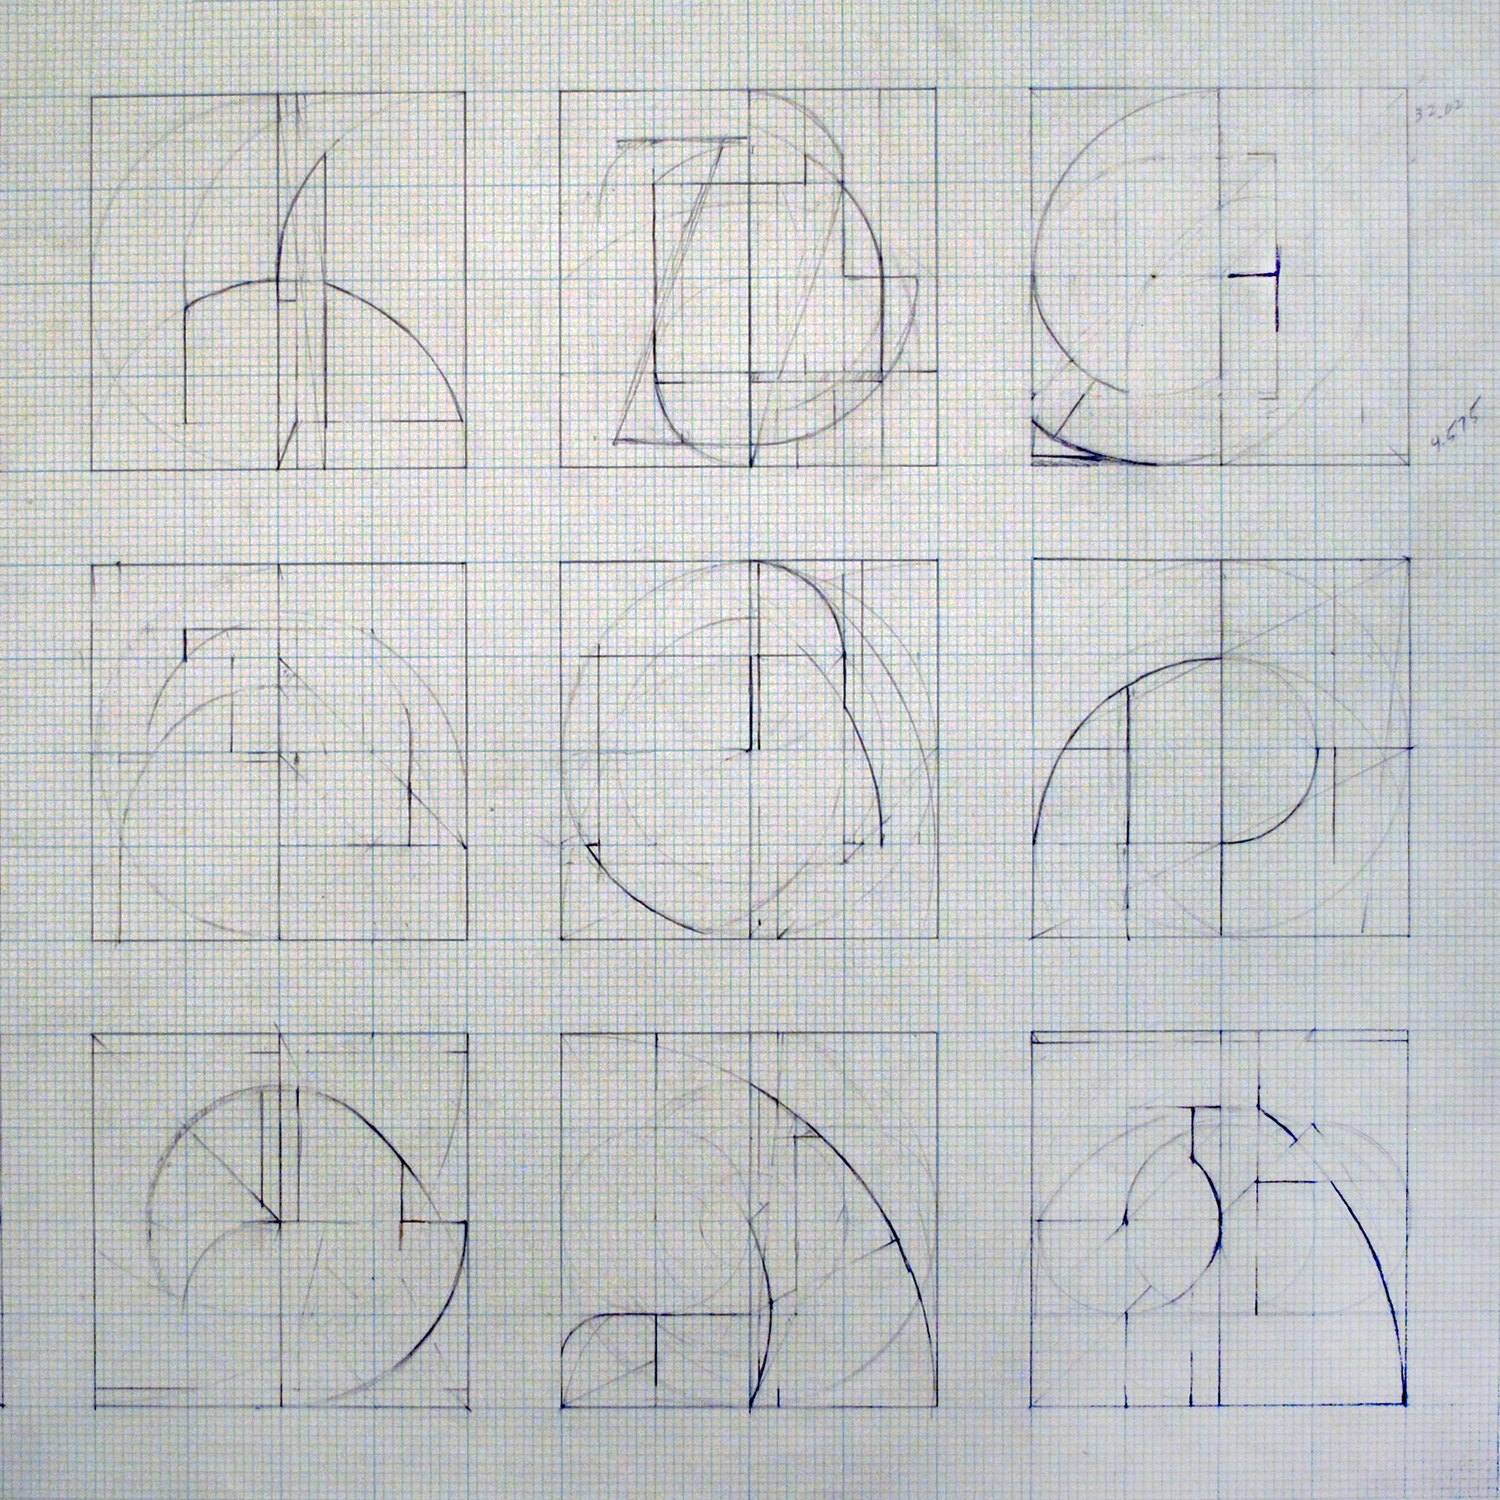 Janus Sketches, 1985, pencil, graph paper, 16 x 16 inches.